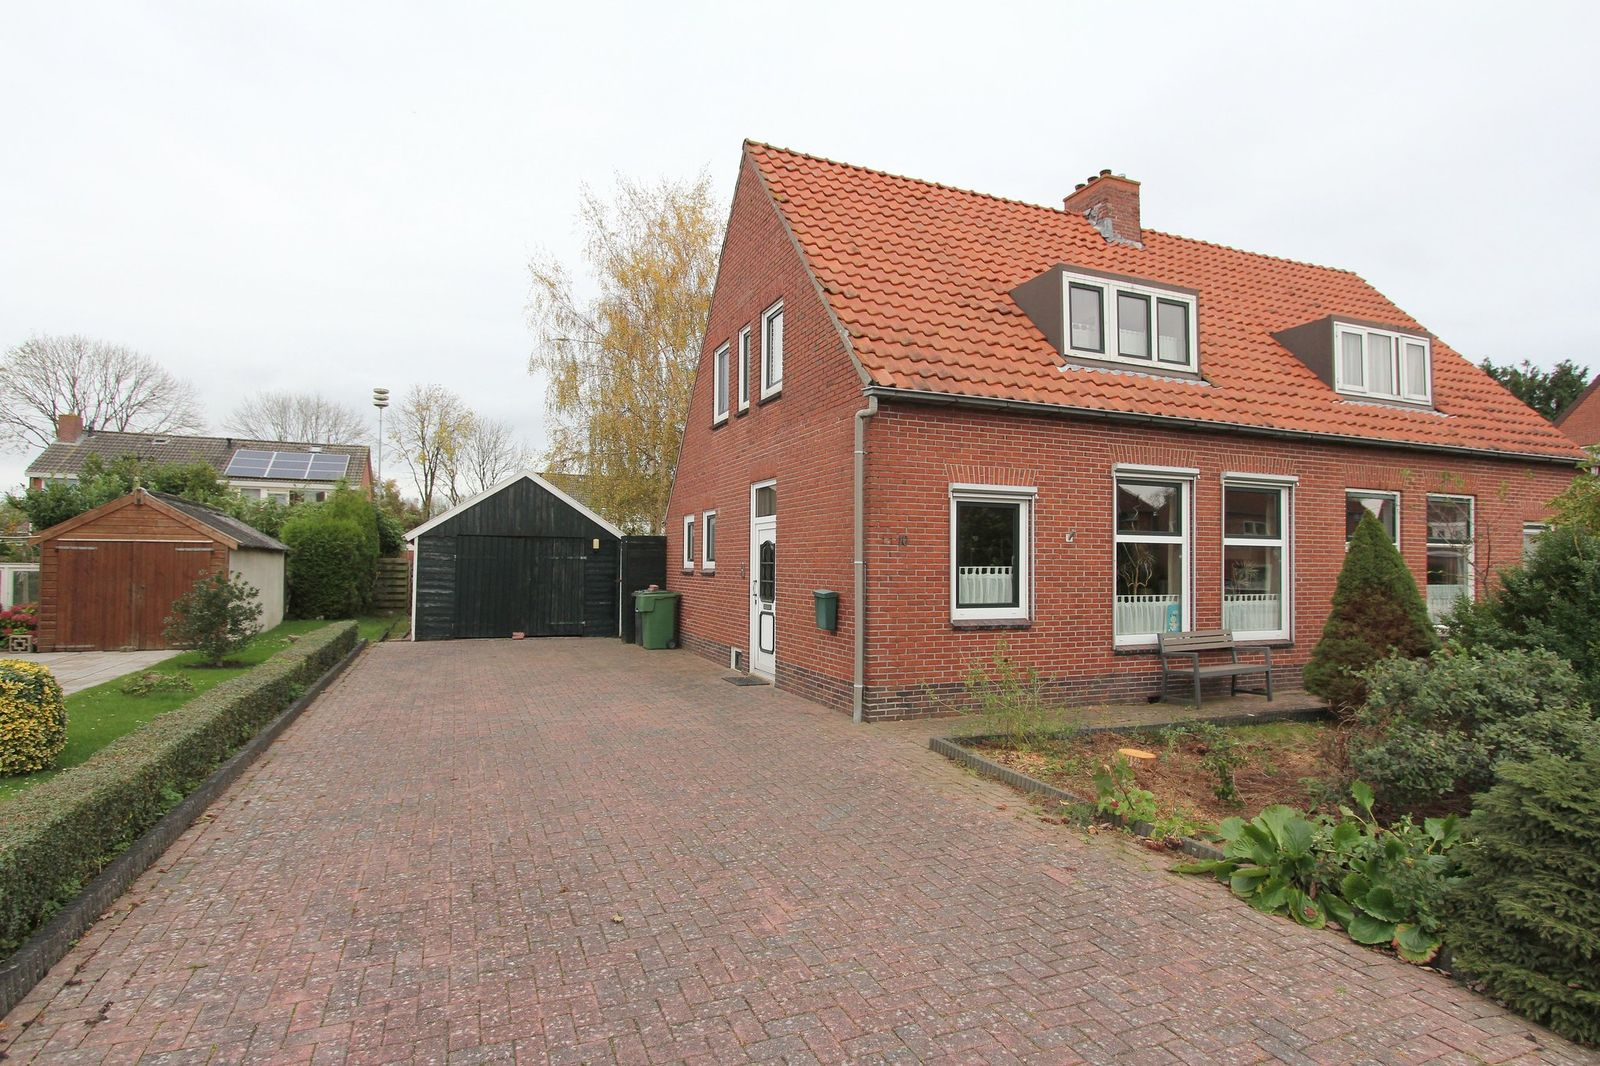 J.Driegenstraat 10, Bad Nieuweschans